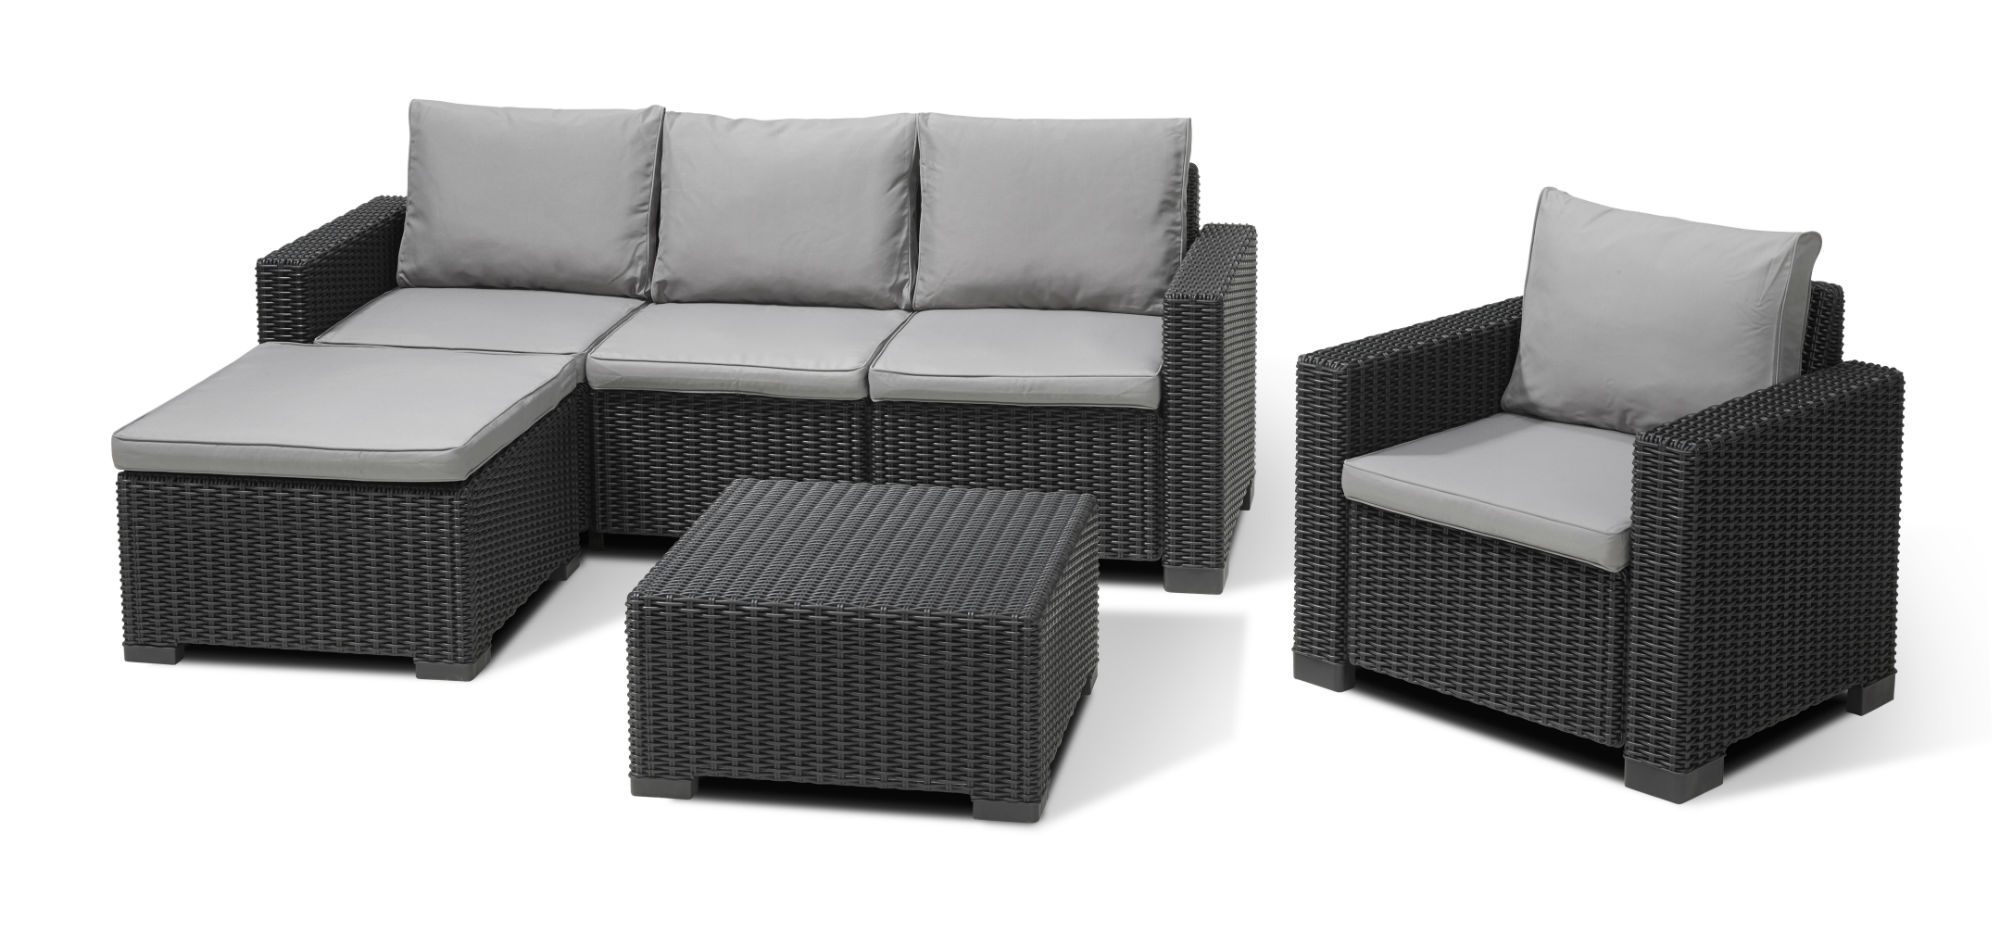 ALLIBERT Moorea Lounge Set Graphit - Allibert